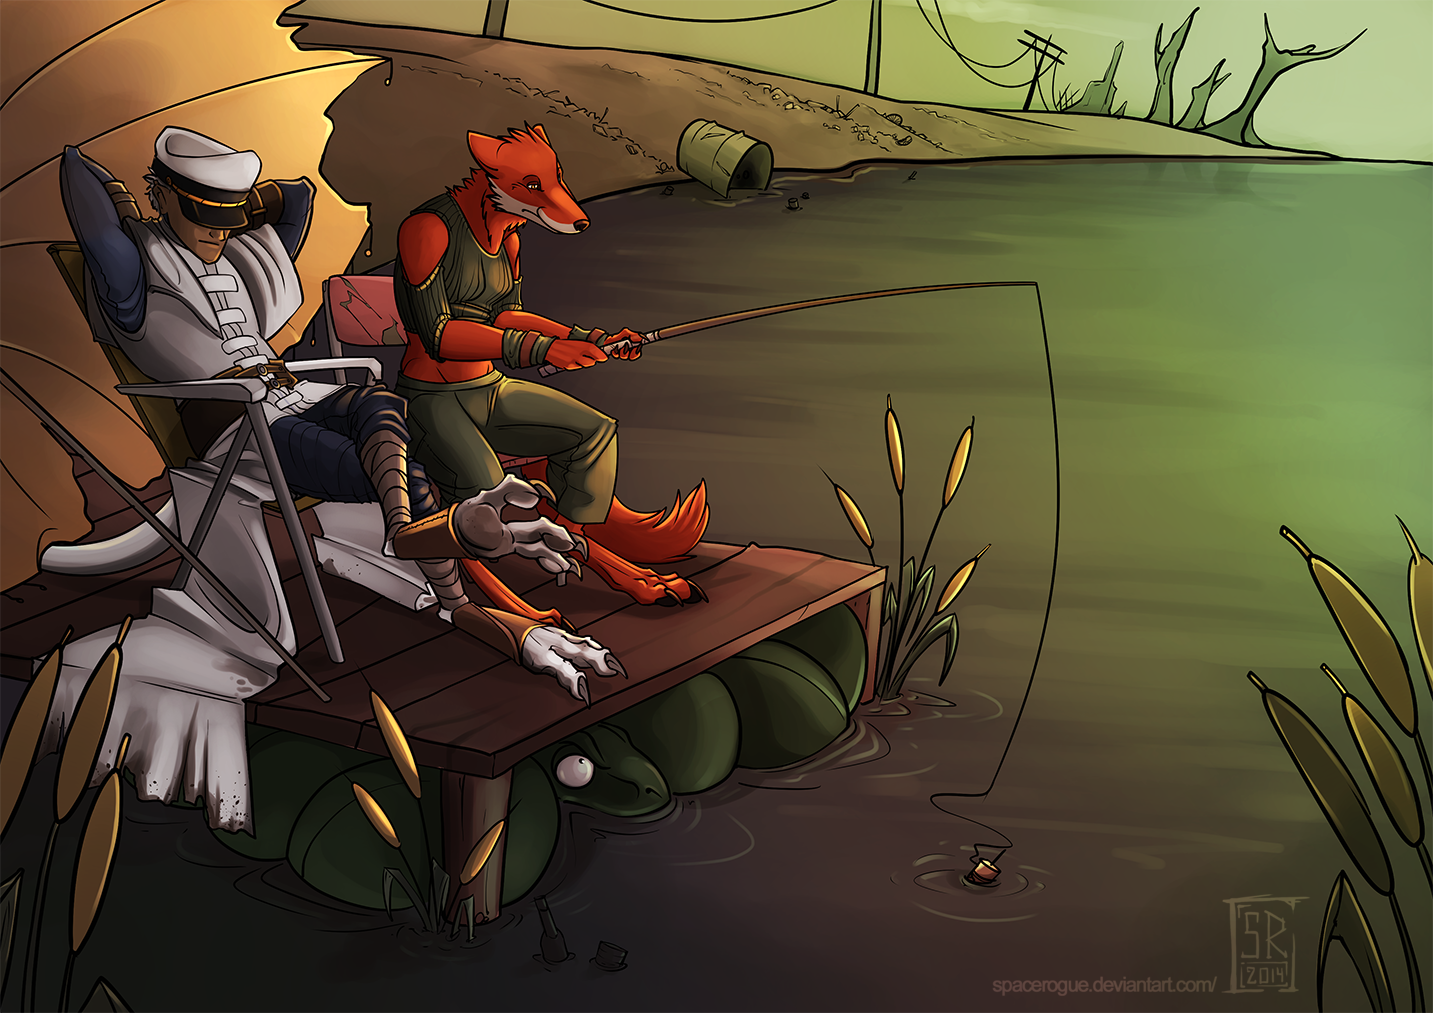 Gone fishin by spacerogue